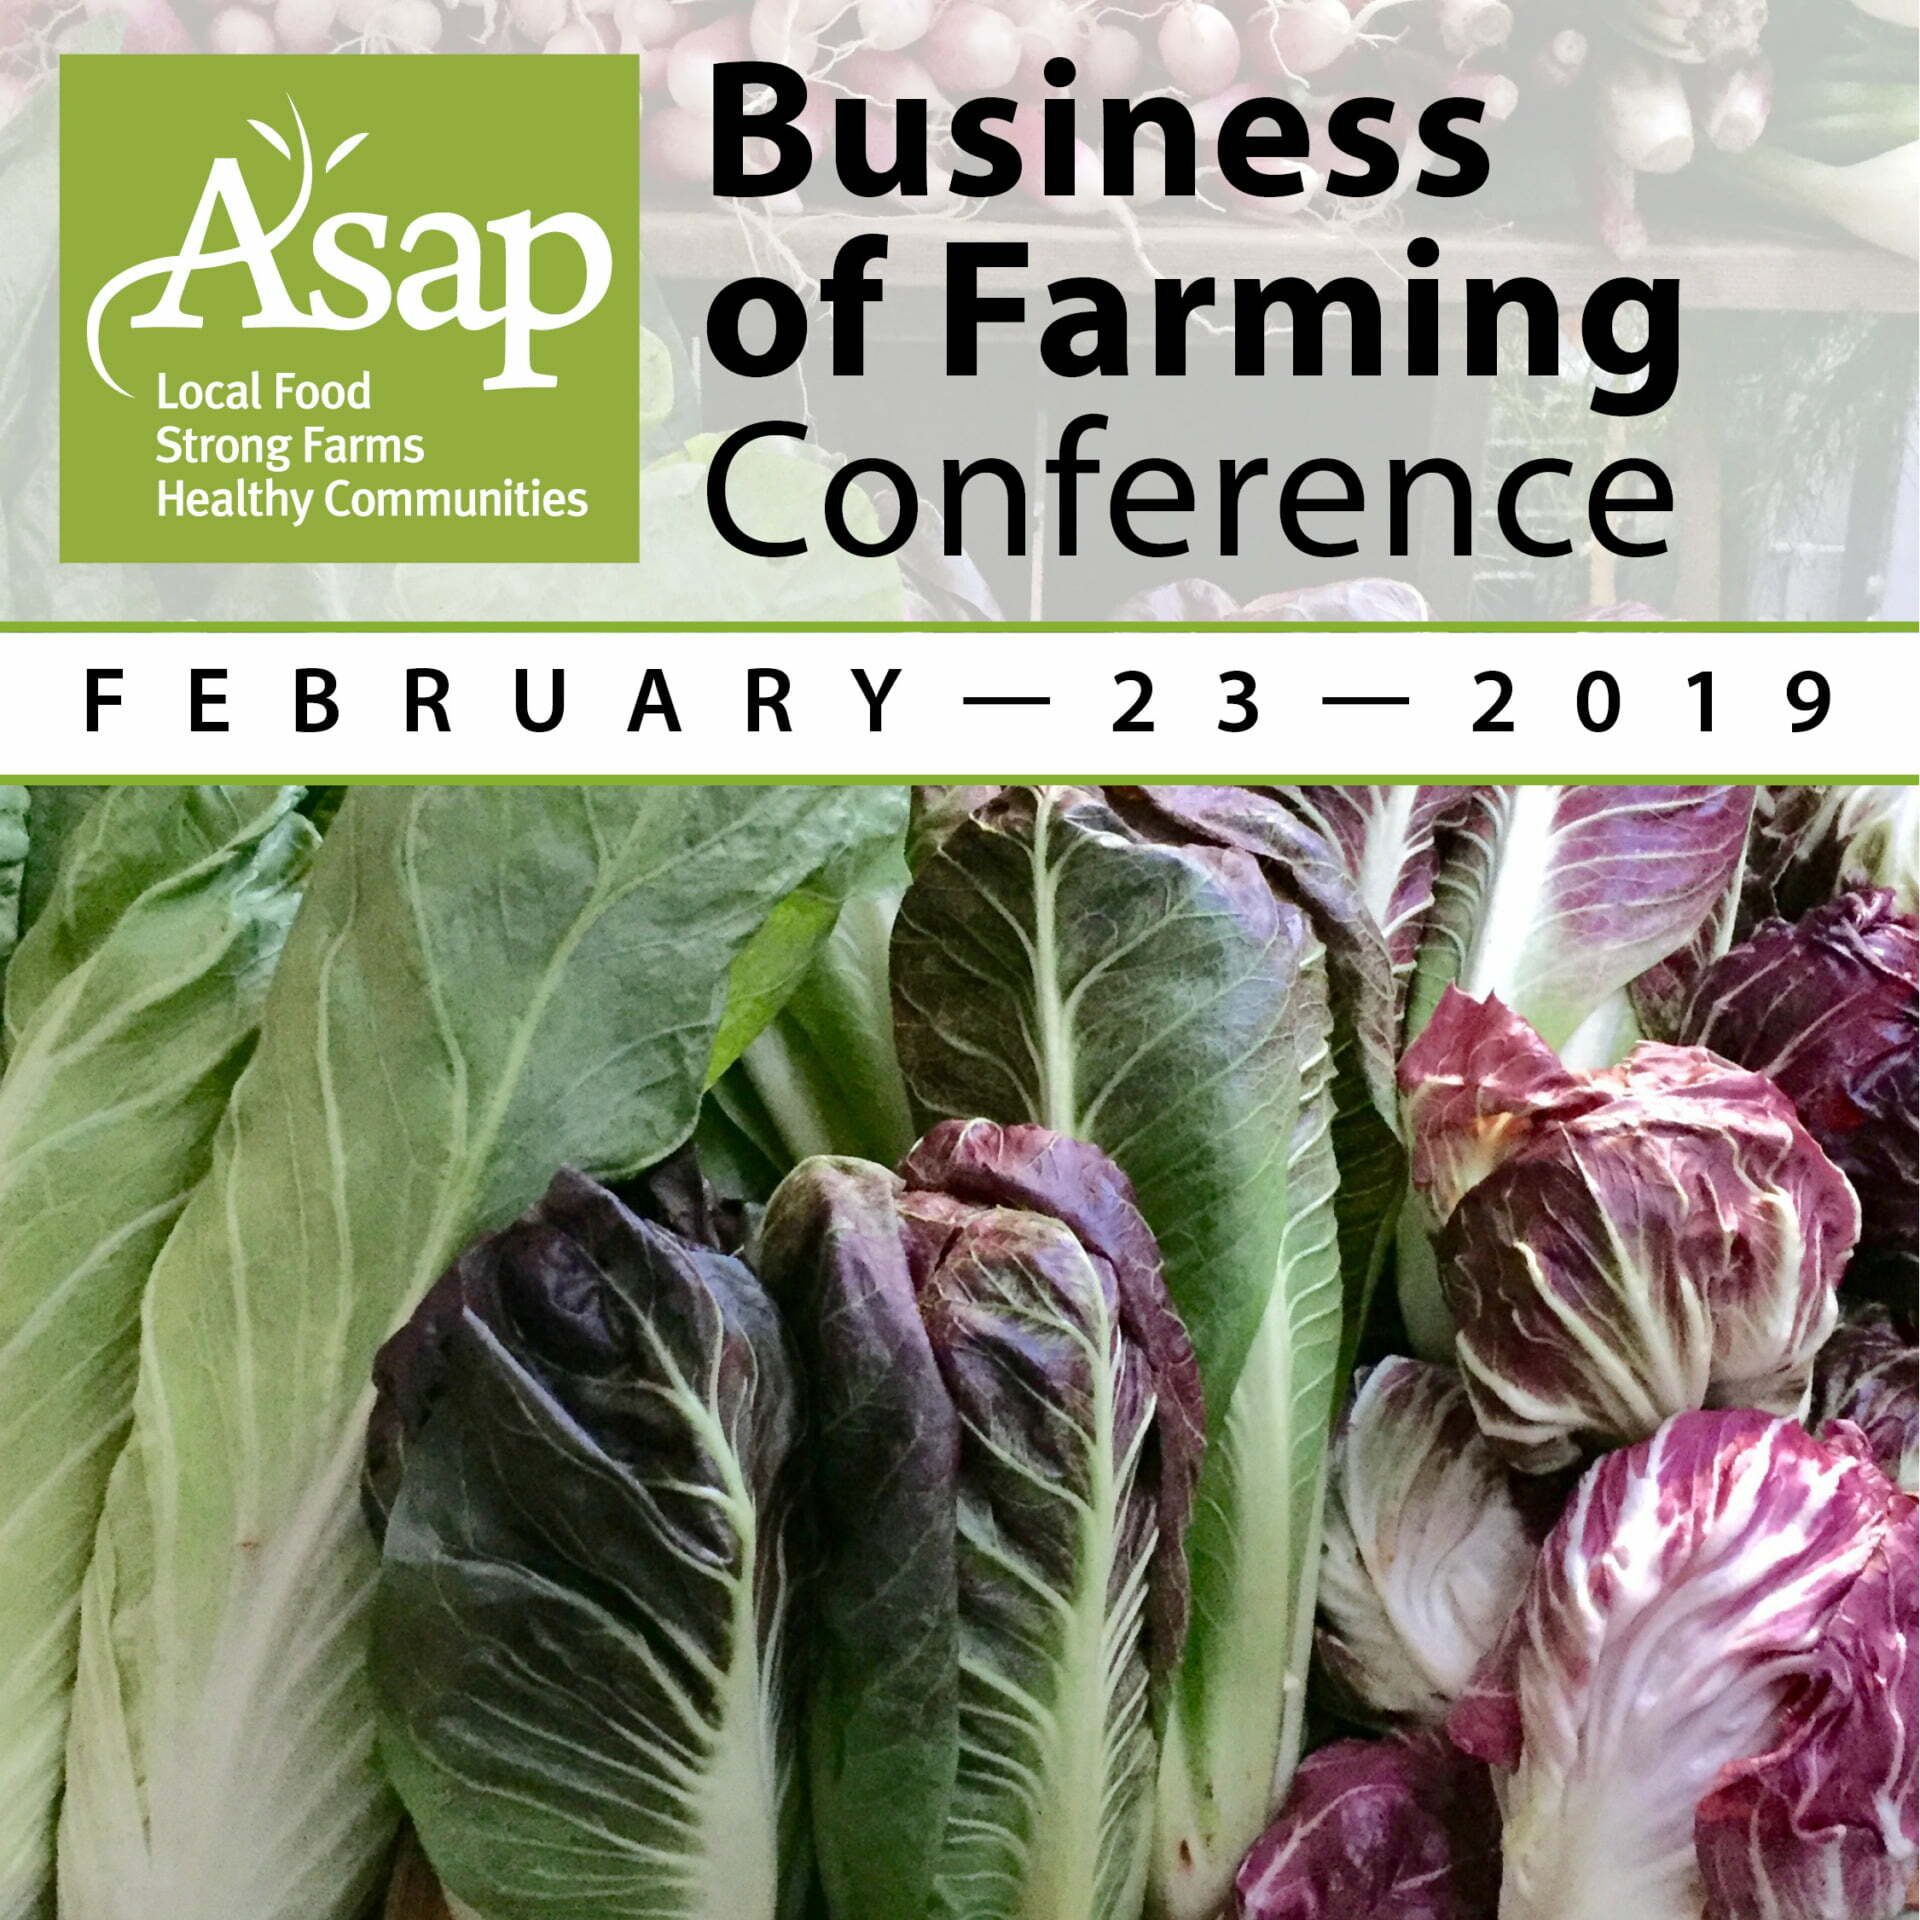 ASAP's Business of Farming Conference